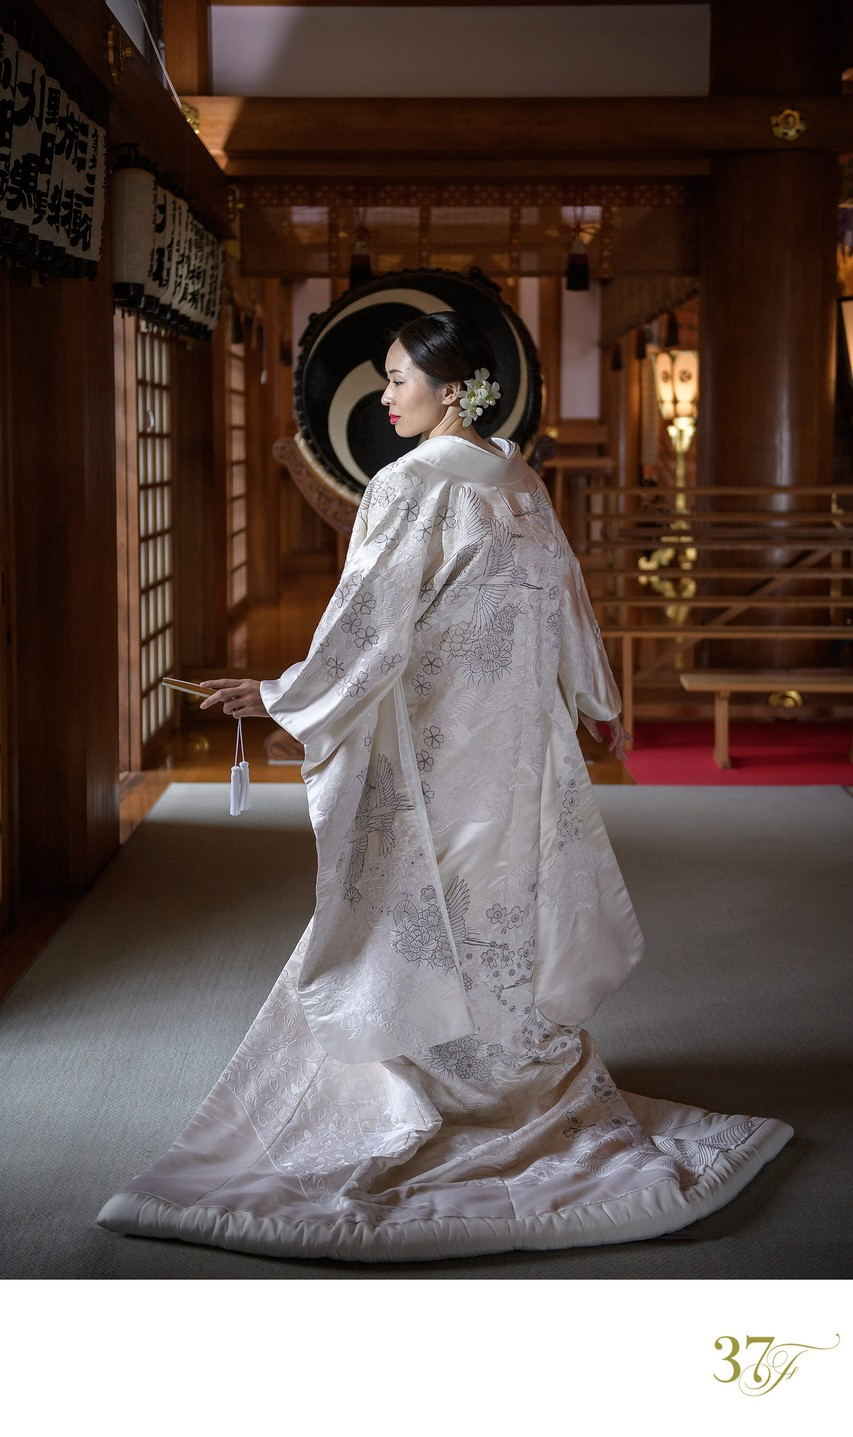 Best wedding photos from Japan